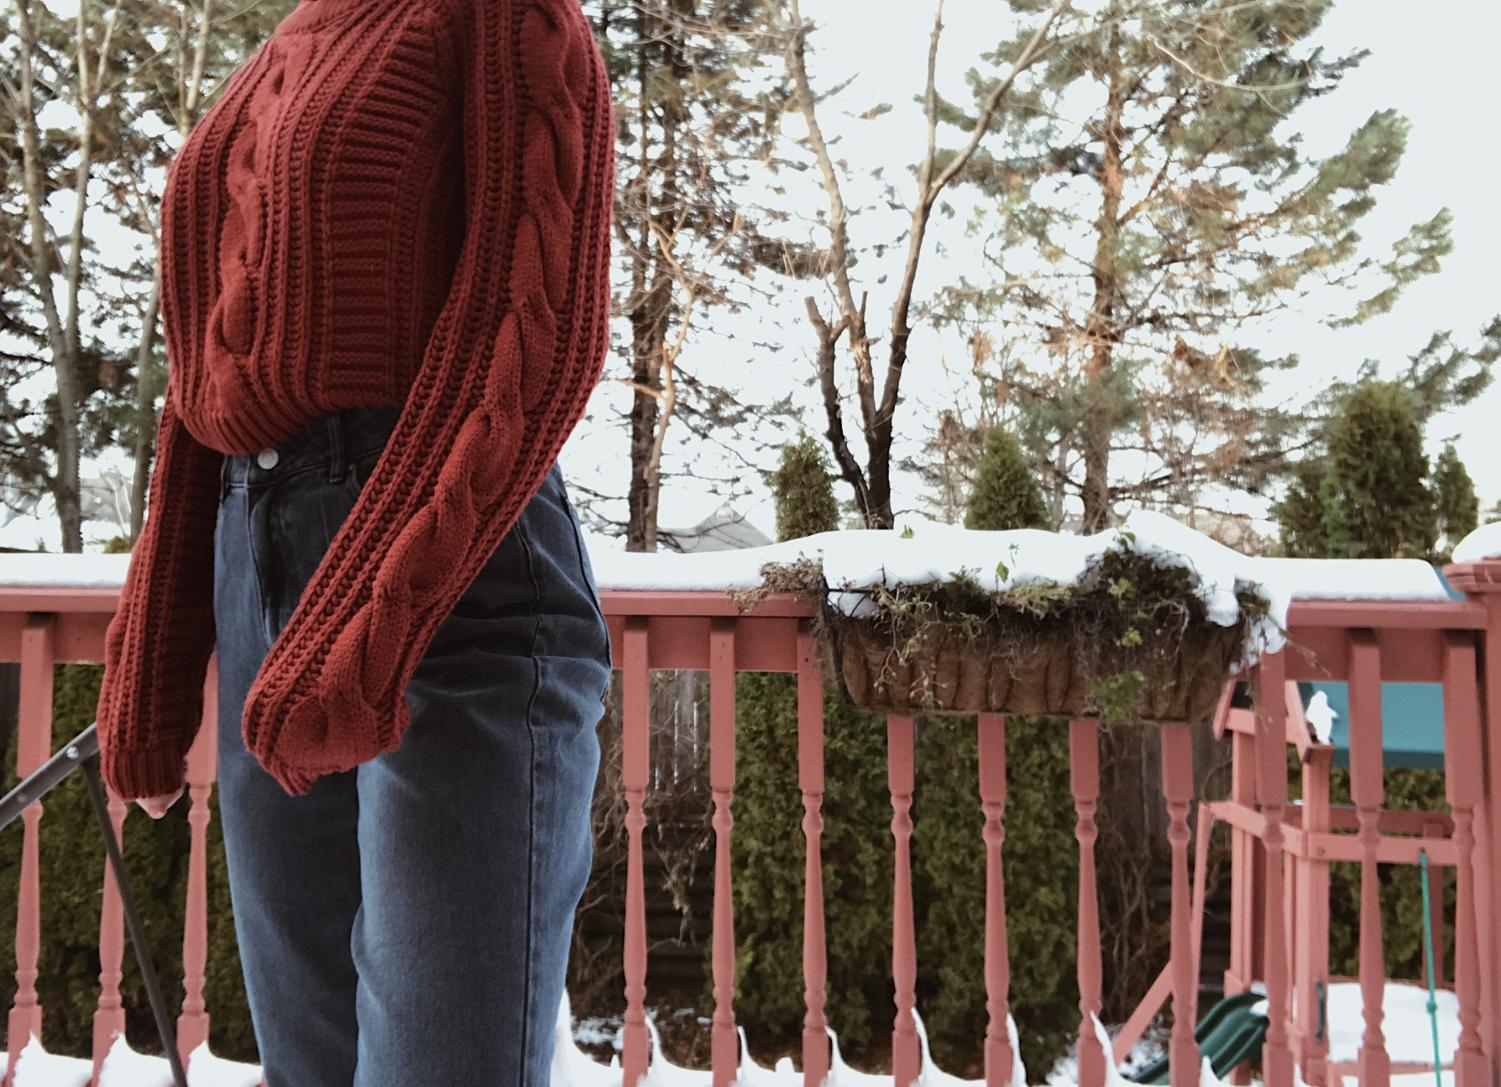 Sweaters and mom jeans are a great way to stay warm and stylish during the colder months.